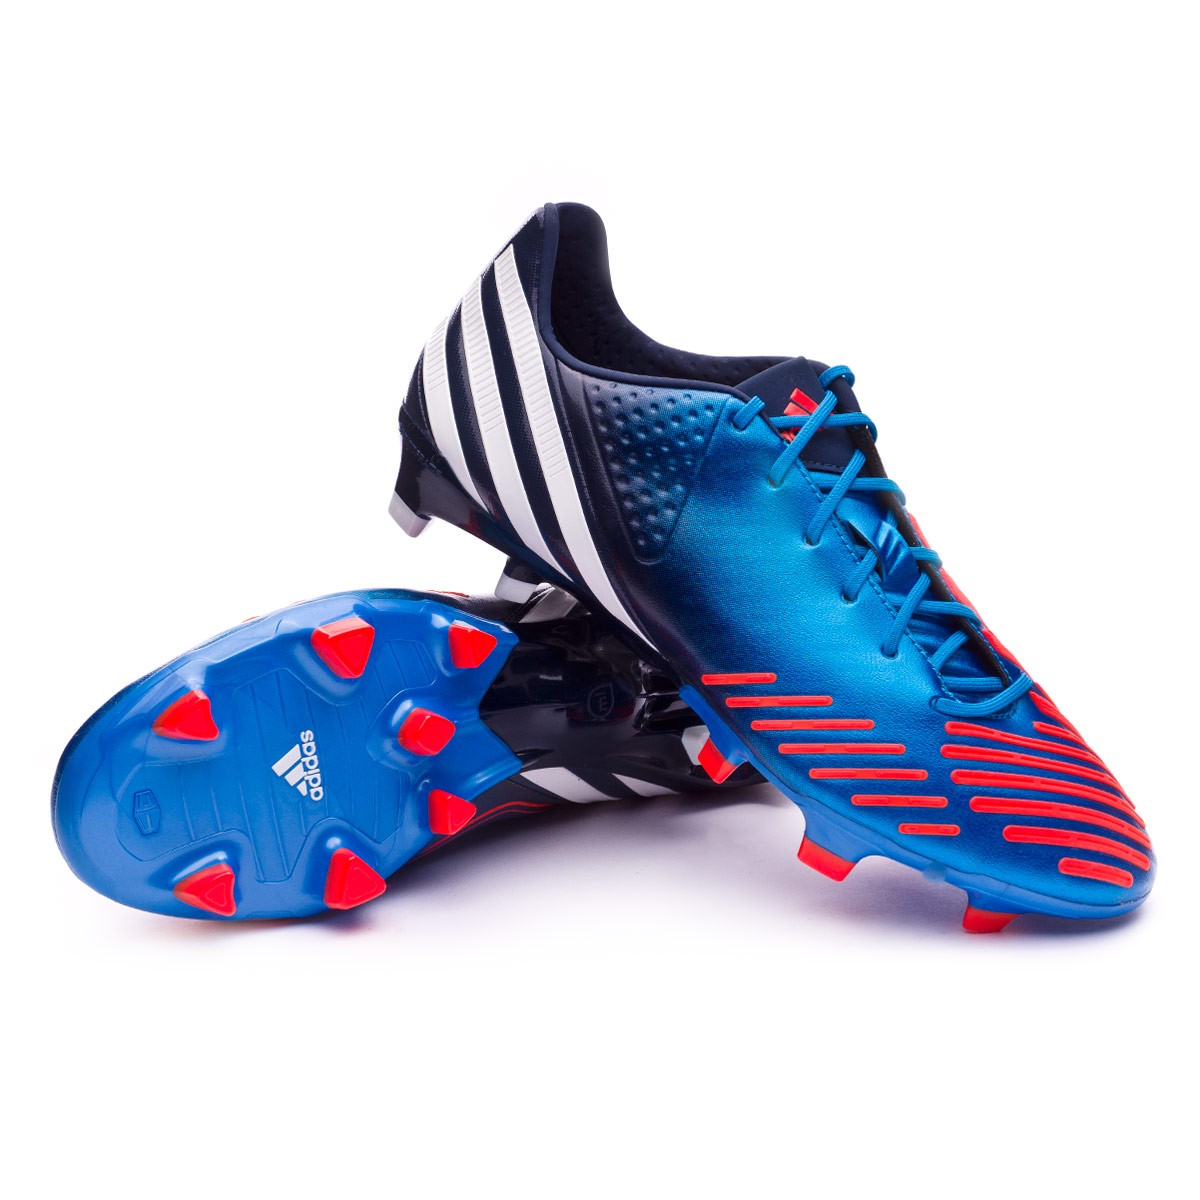 finest selection 9b2ca 0f9eb CATEGORY. Football boots · adidas football boots